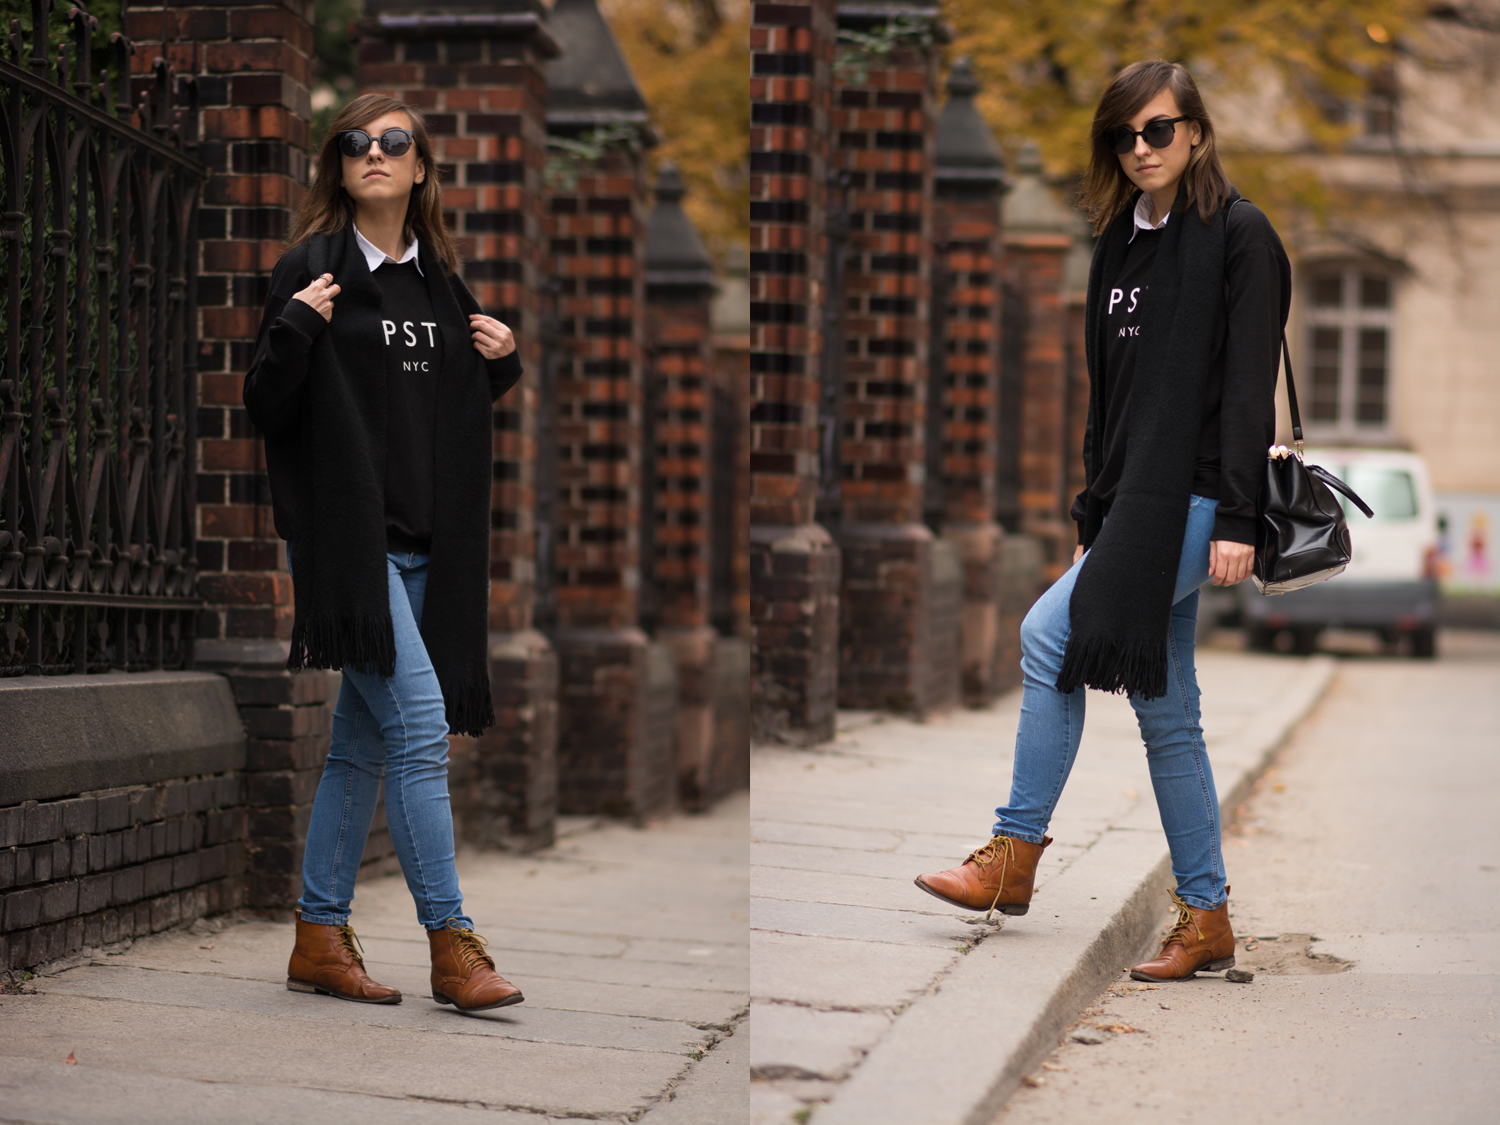 Mango Hipster sweatshirt, H&M sale jeans, camel laced up shoes, blogger, street style